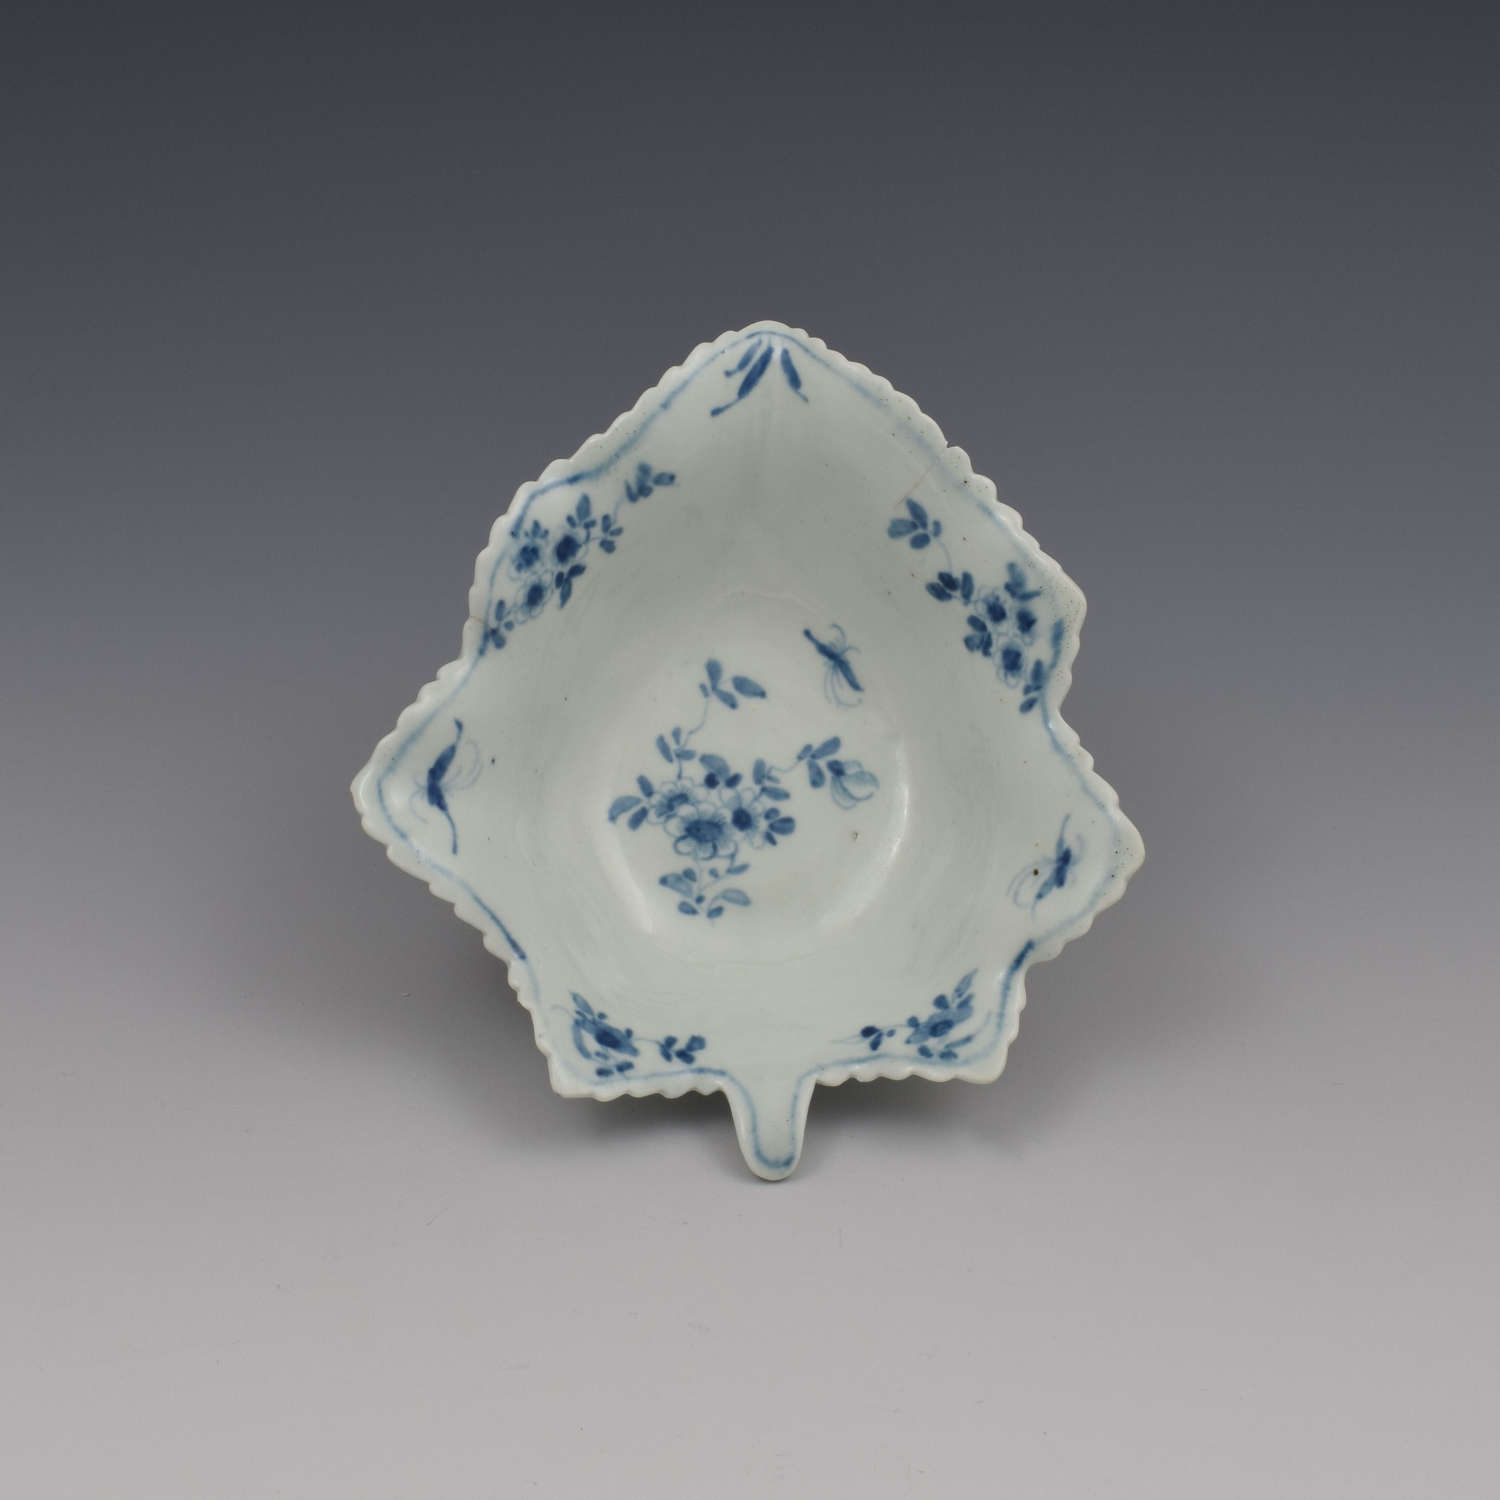 Large First Period Worcester Porcelain Pickle Leaf Daisy Dish c.1760